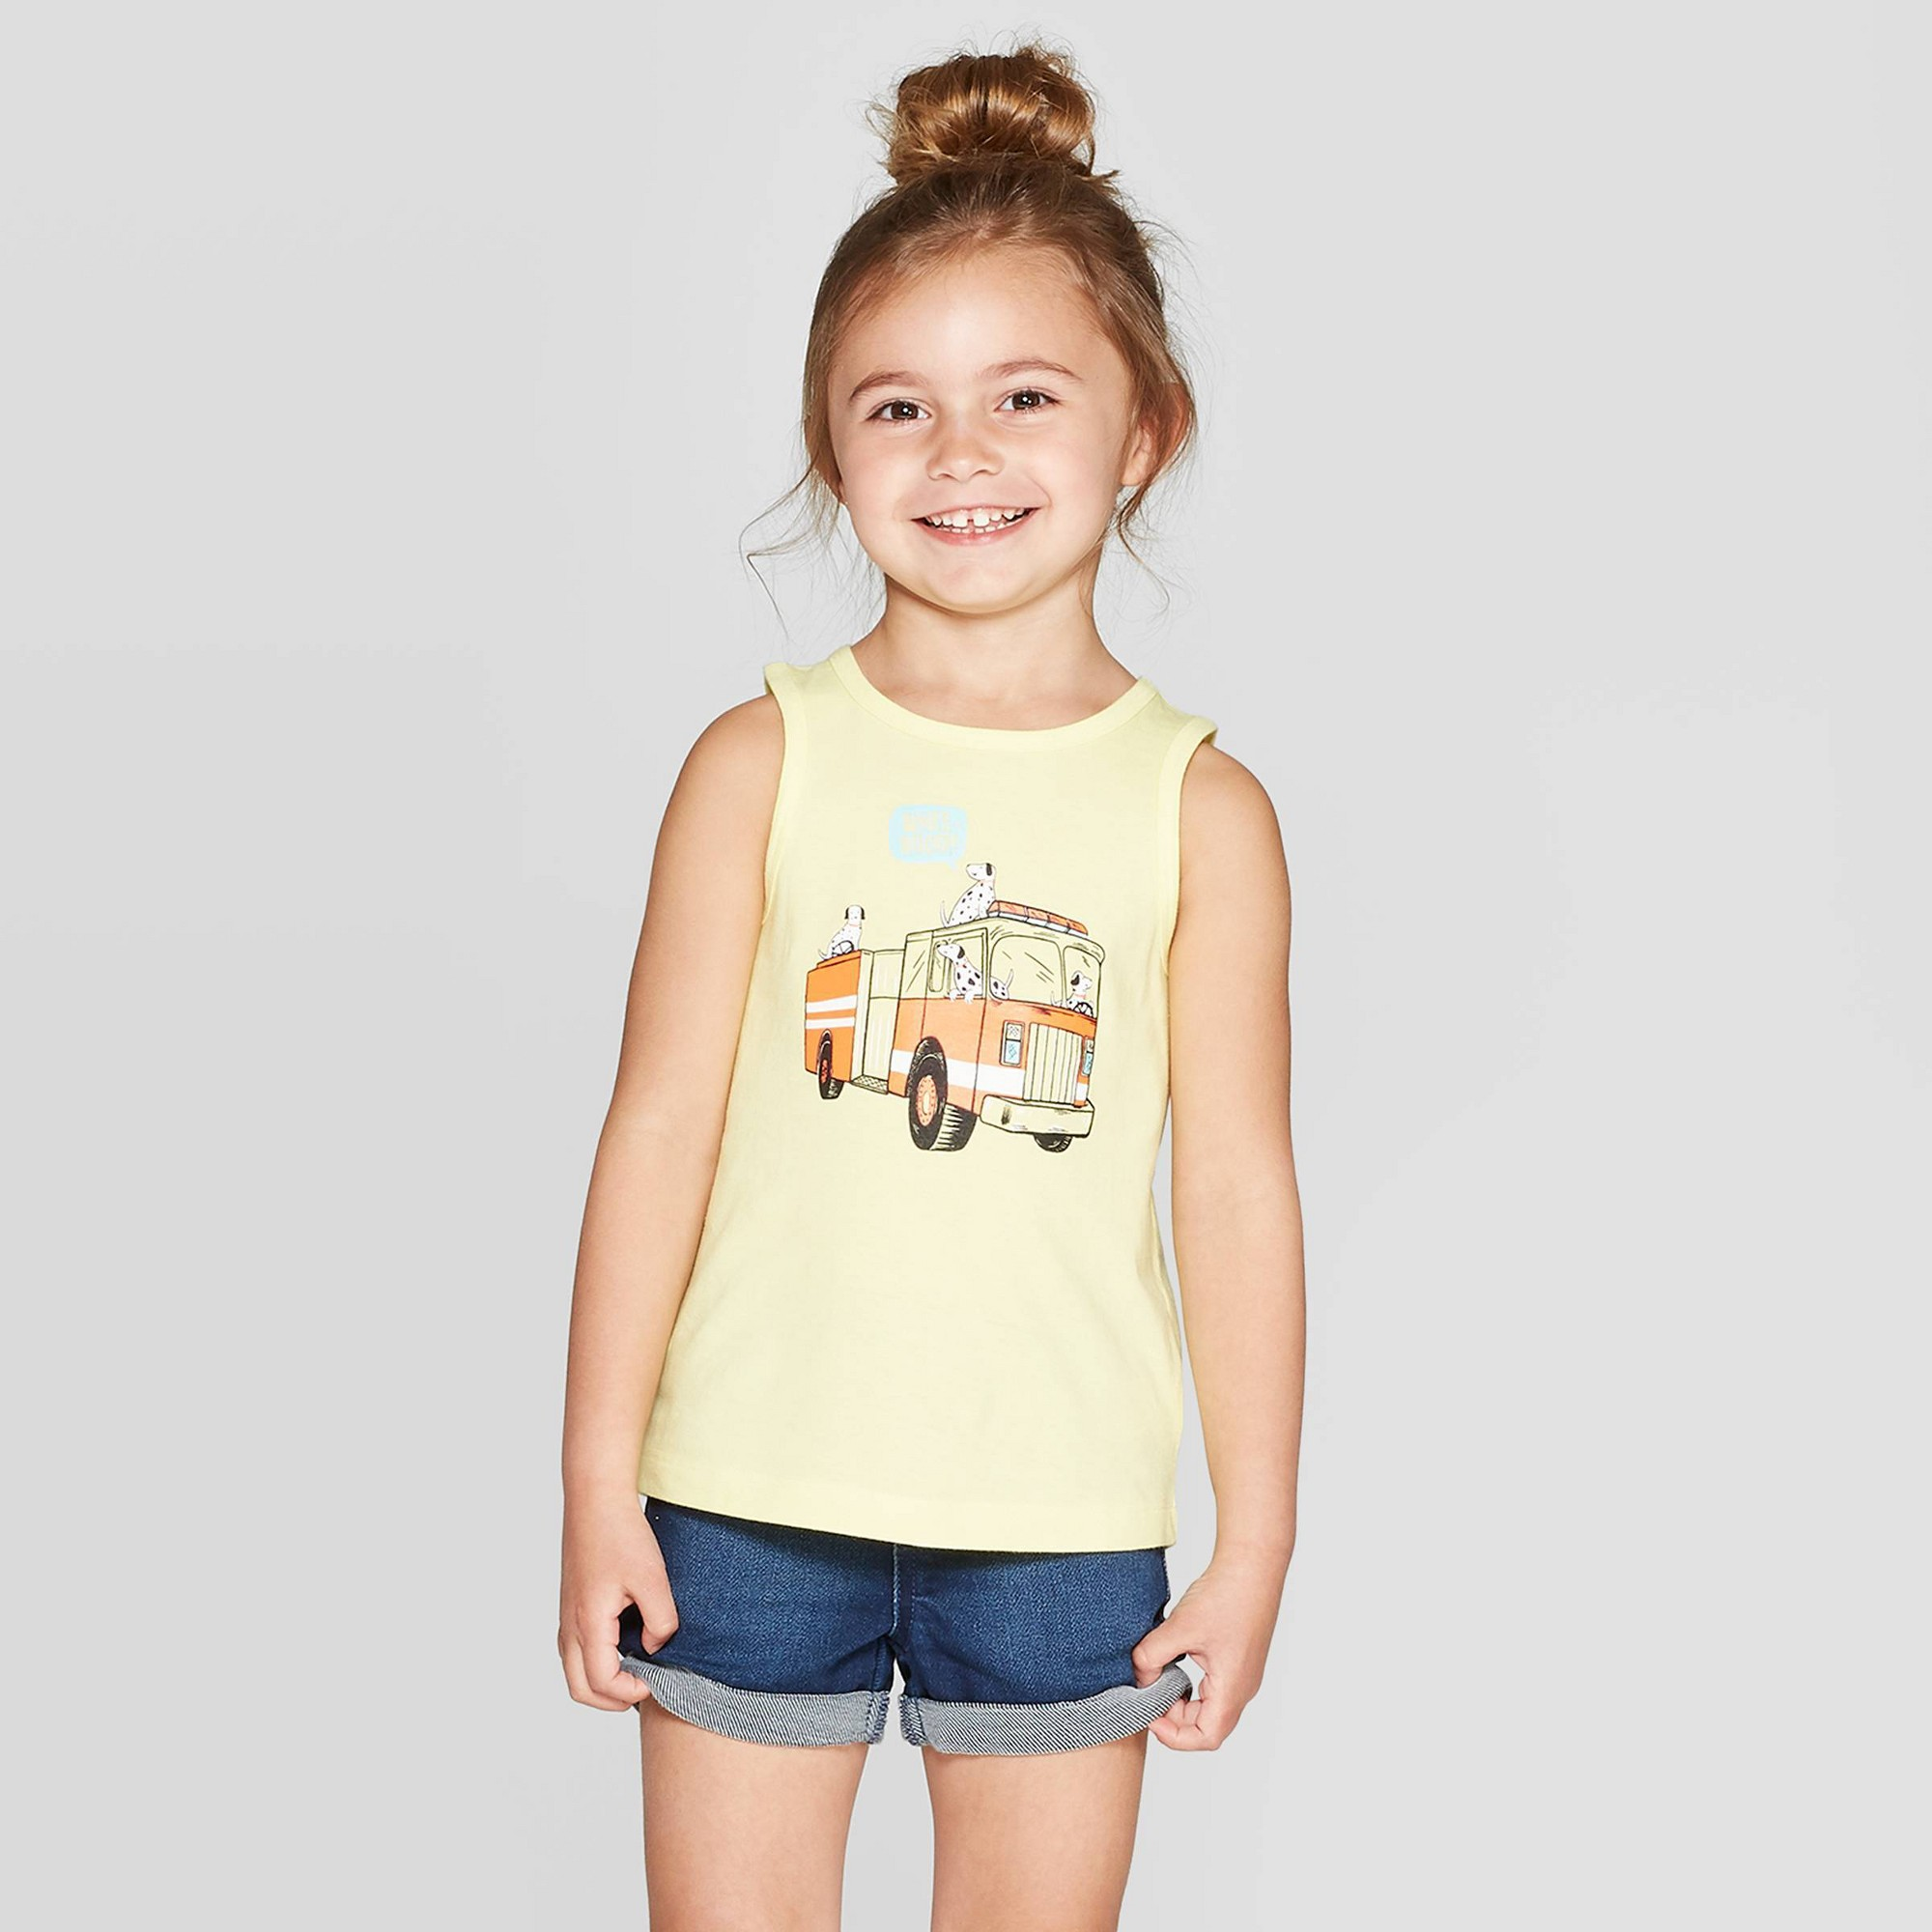 Toddler Girls' 'Fire Trucks' Graphic Tank Top - Cat & Jack Yellow 18M